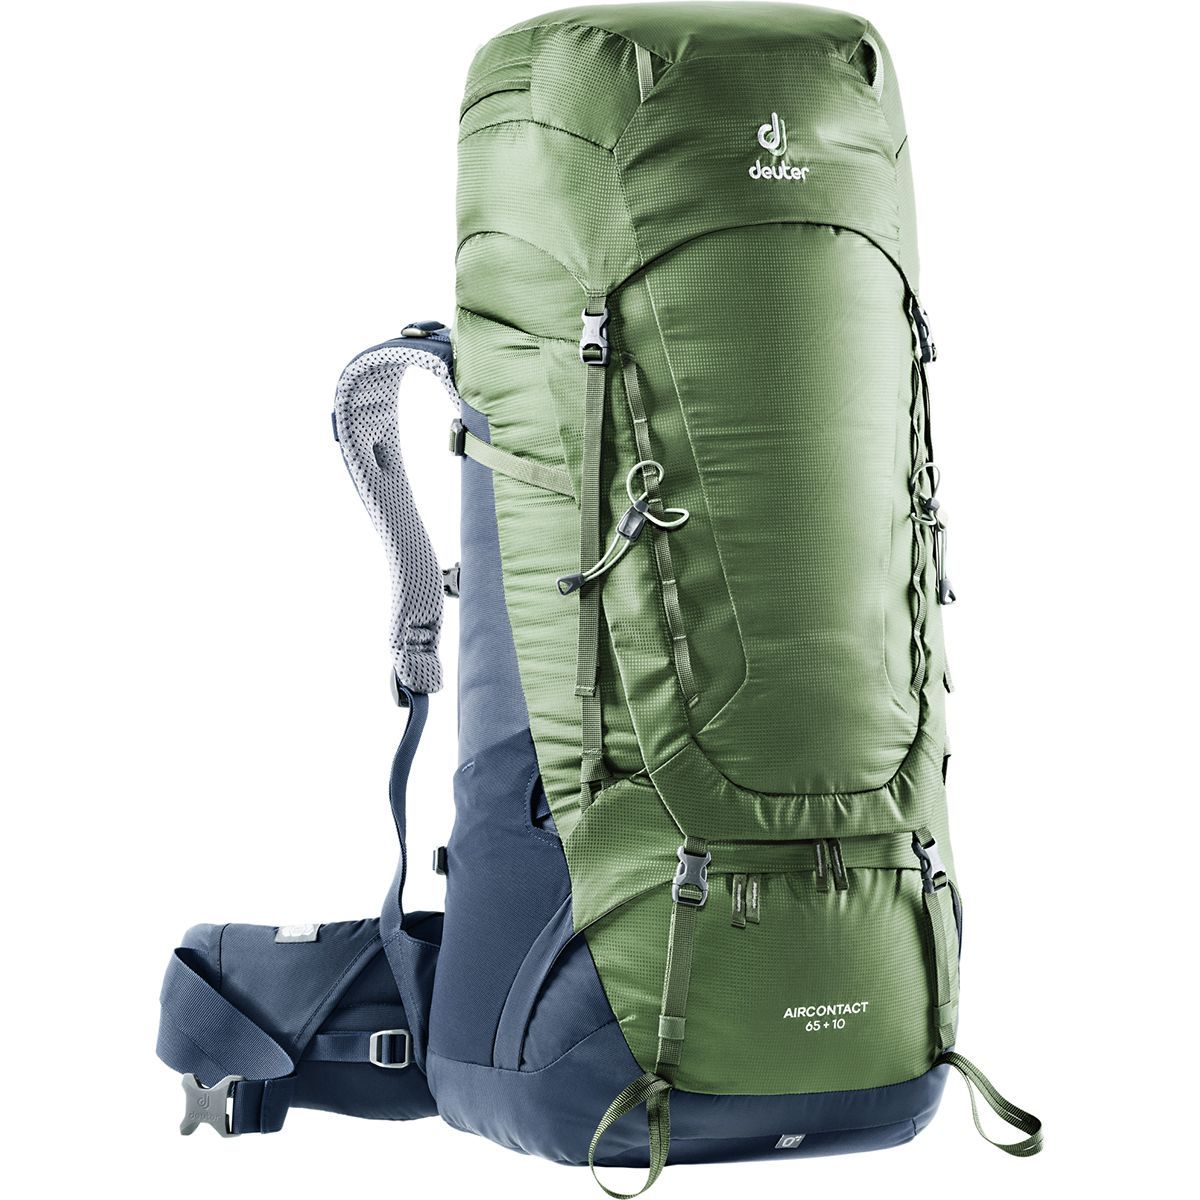 Photo of Aircontact 65+10L Backpack